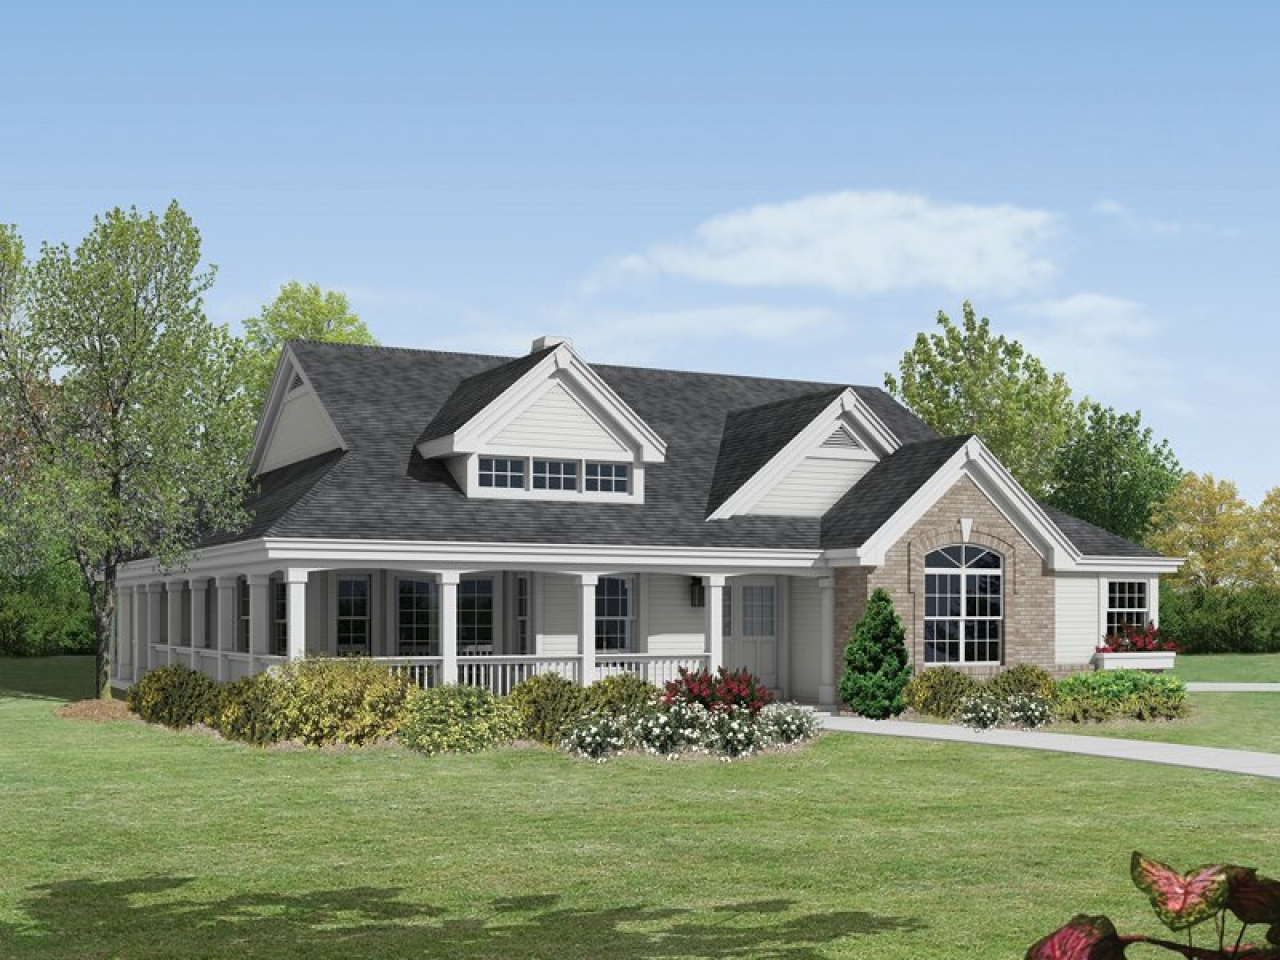 Ranch Style House Plans With Wrap Around Porch Bungalow House Plans With Porches Bungalow House Plans